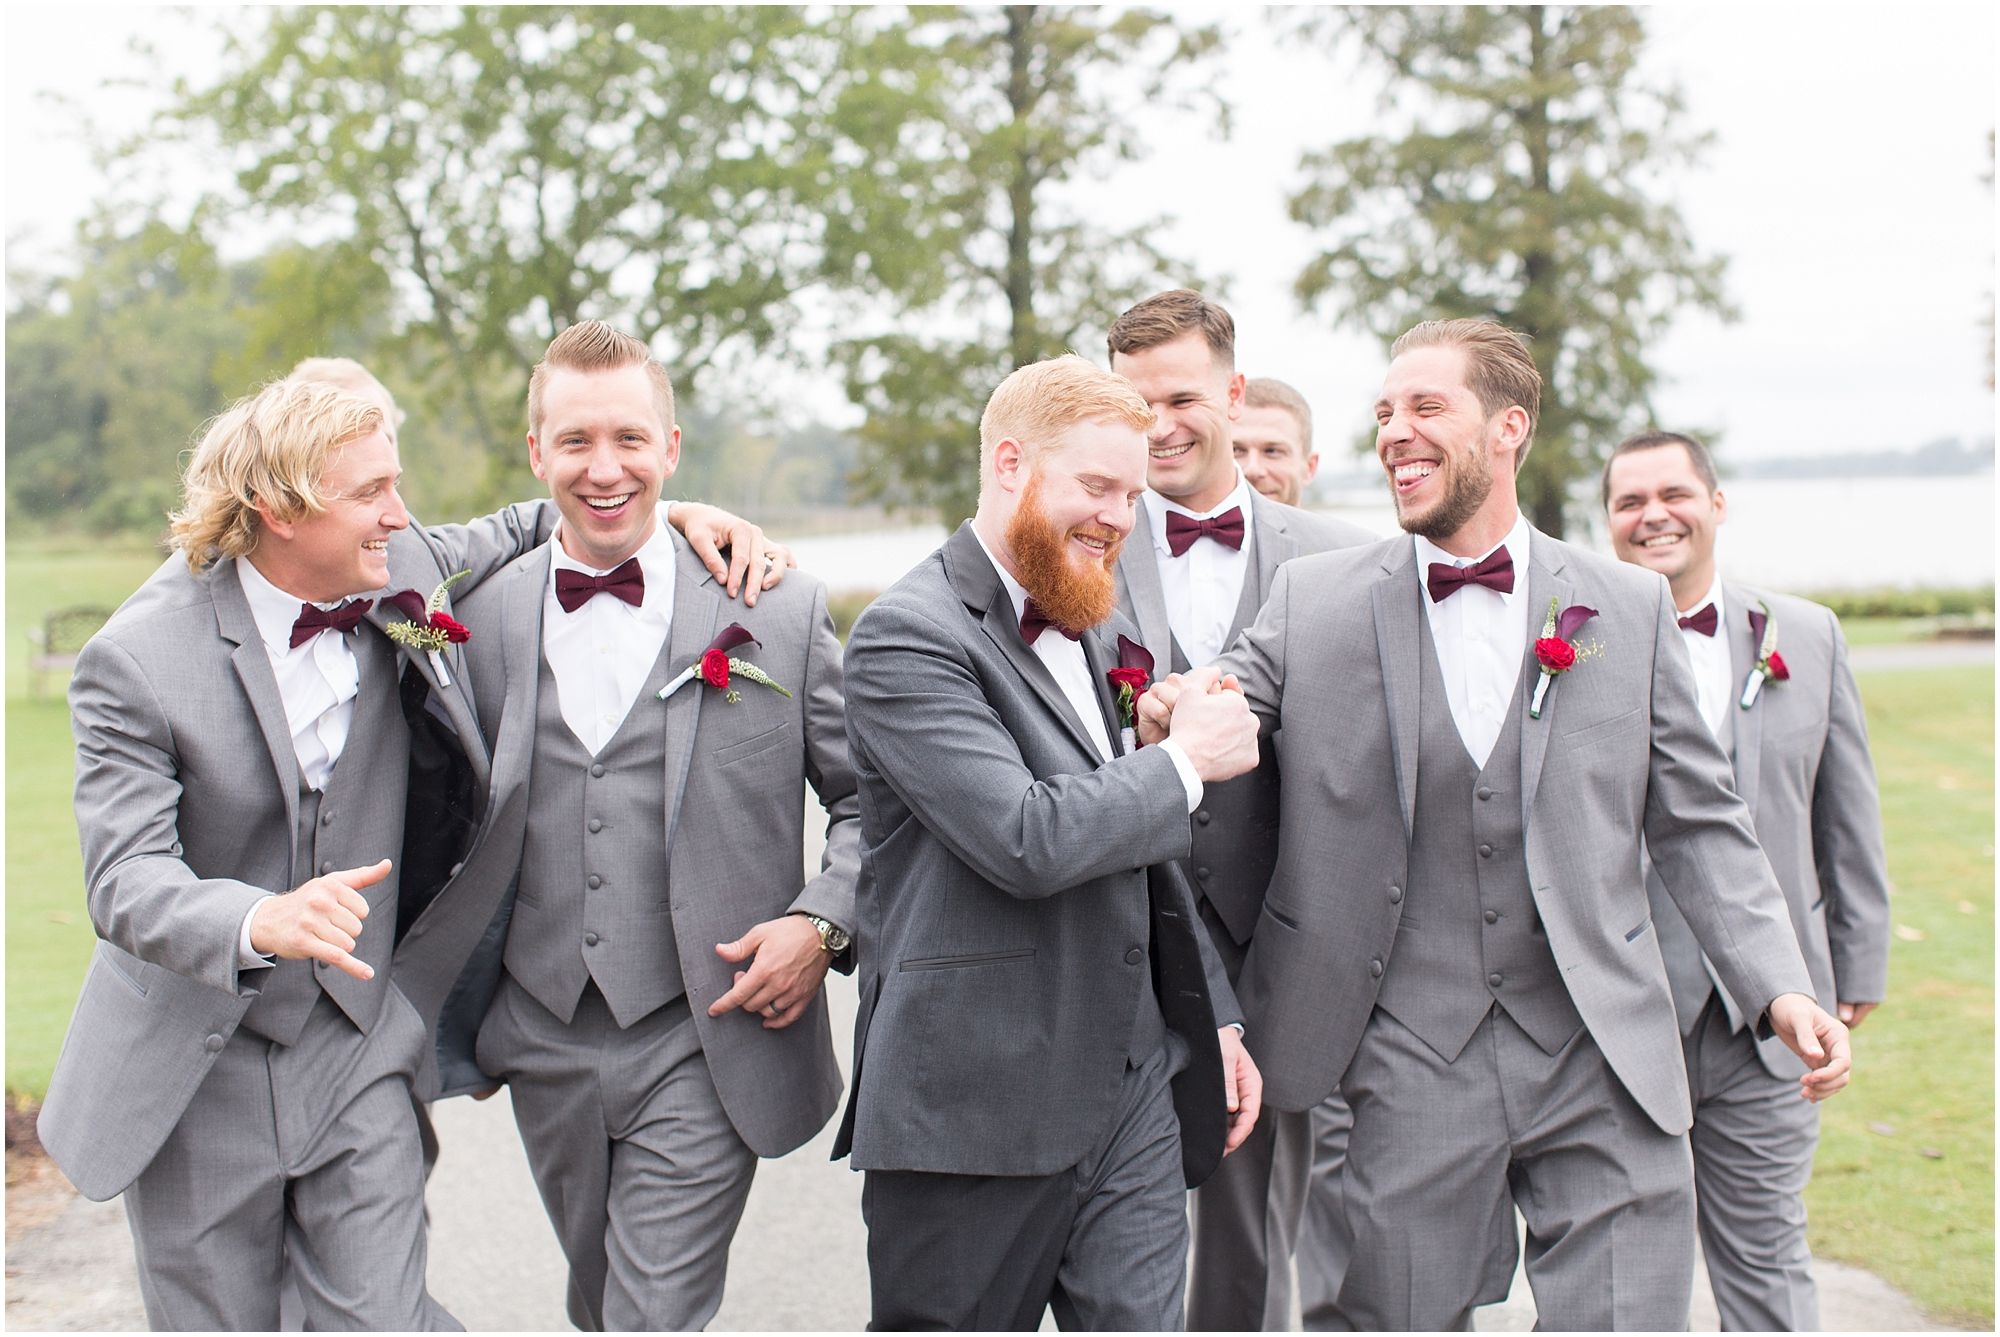 studio i do, groomsmen suits, obici house wedding in suffolk virginia, virginia wedding photographer